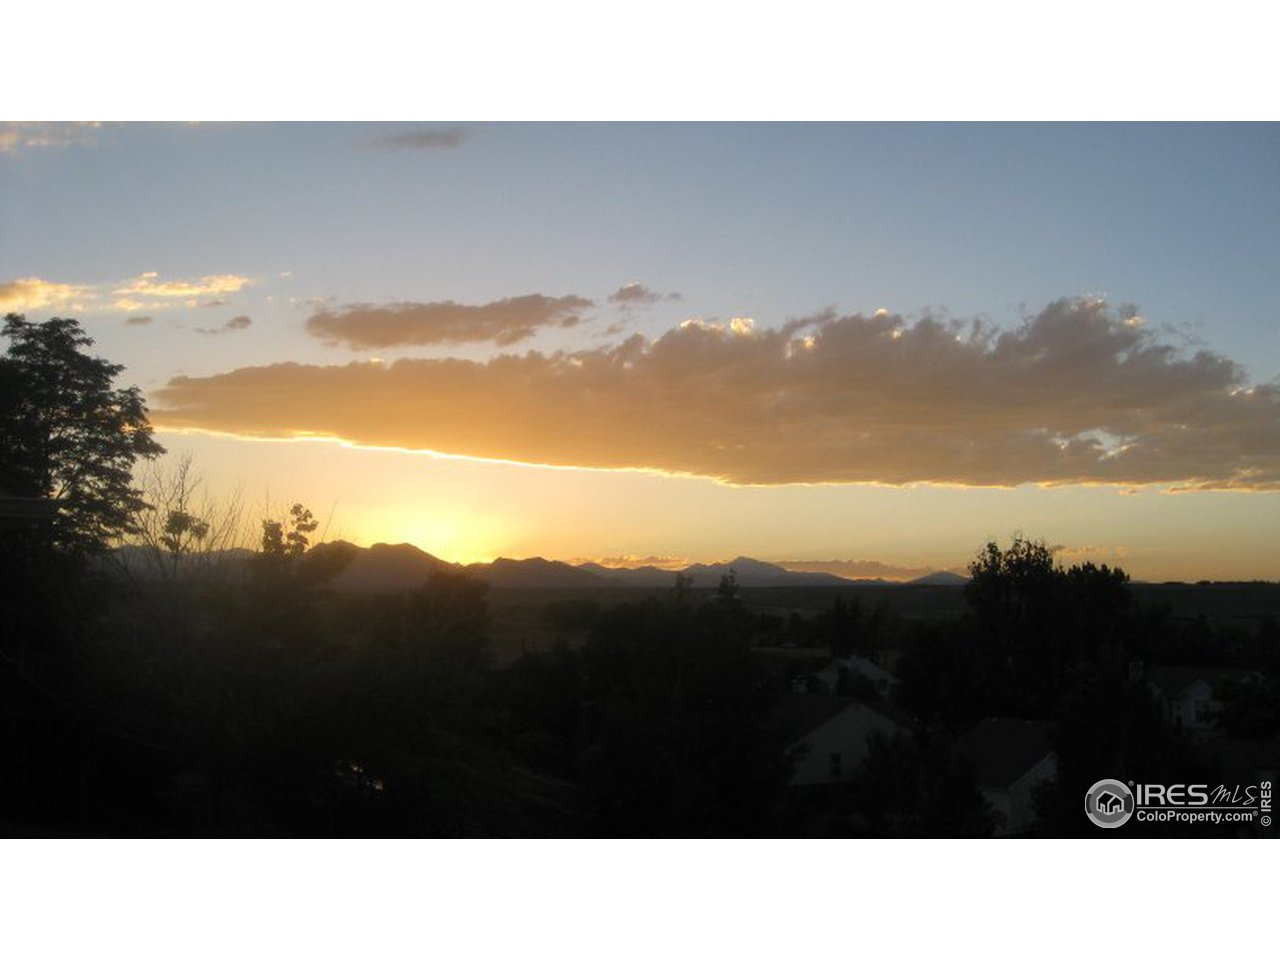 More sunsets from deck